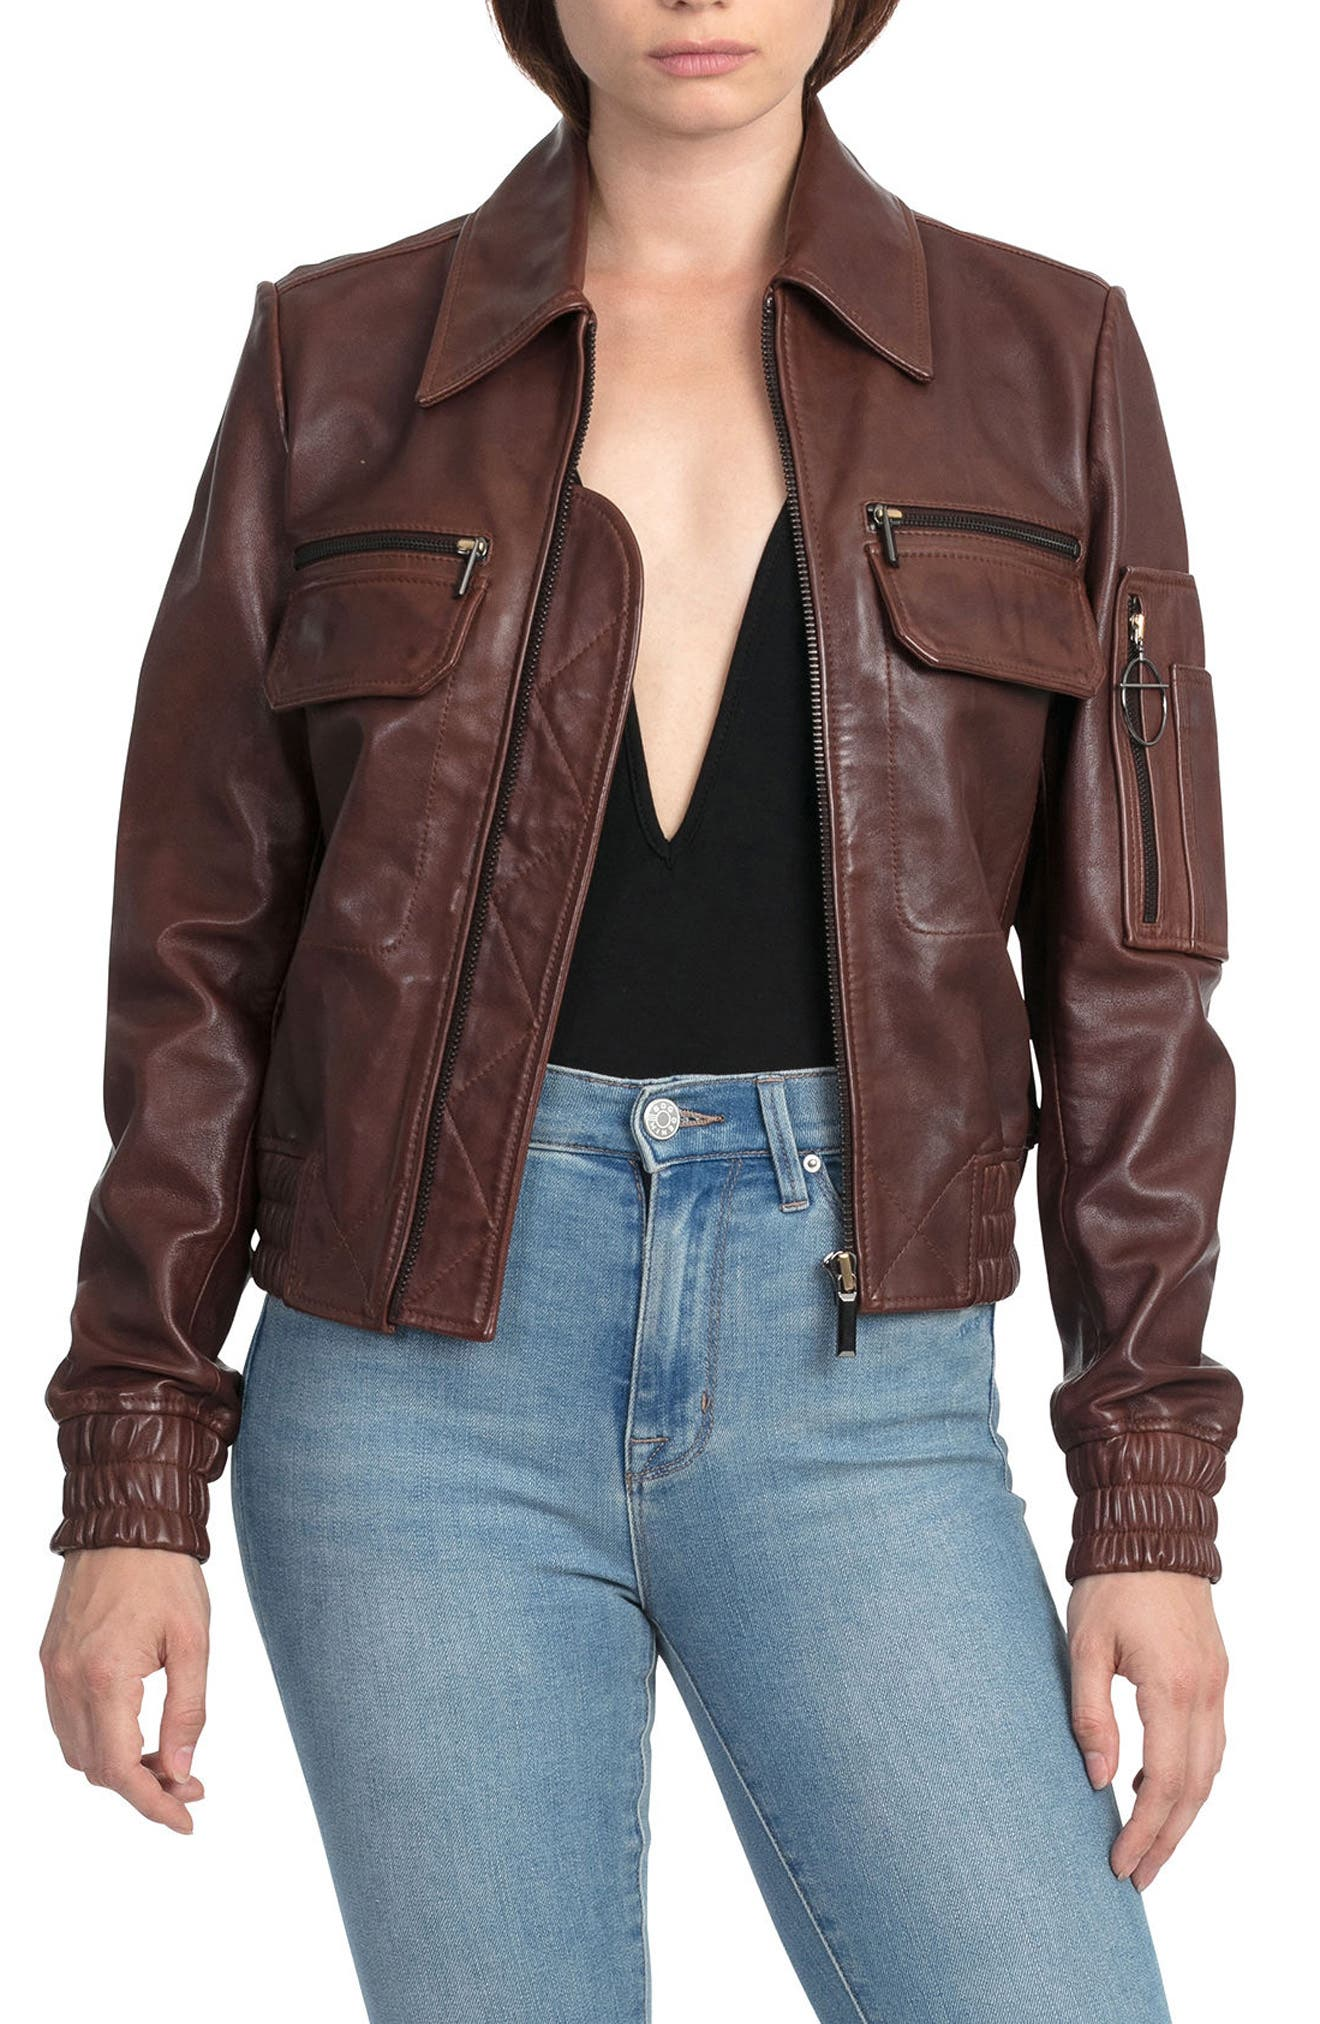 Alternate Image 1 Selected - BAGATELLE.CITY The Aviator Leather Jacket